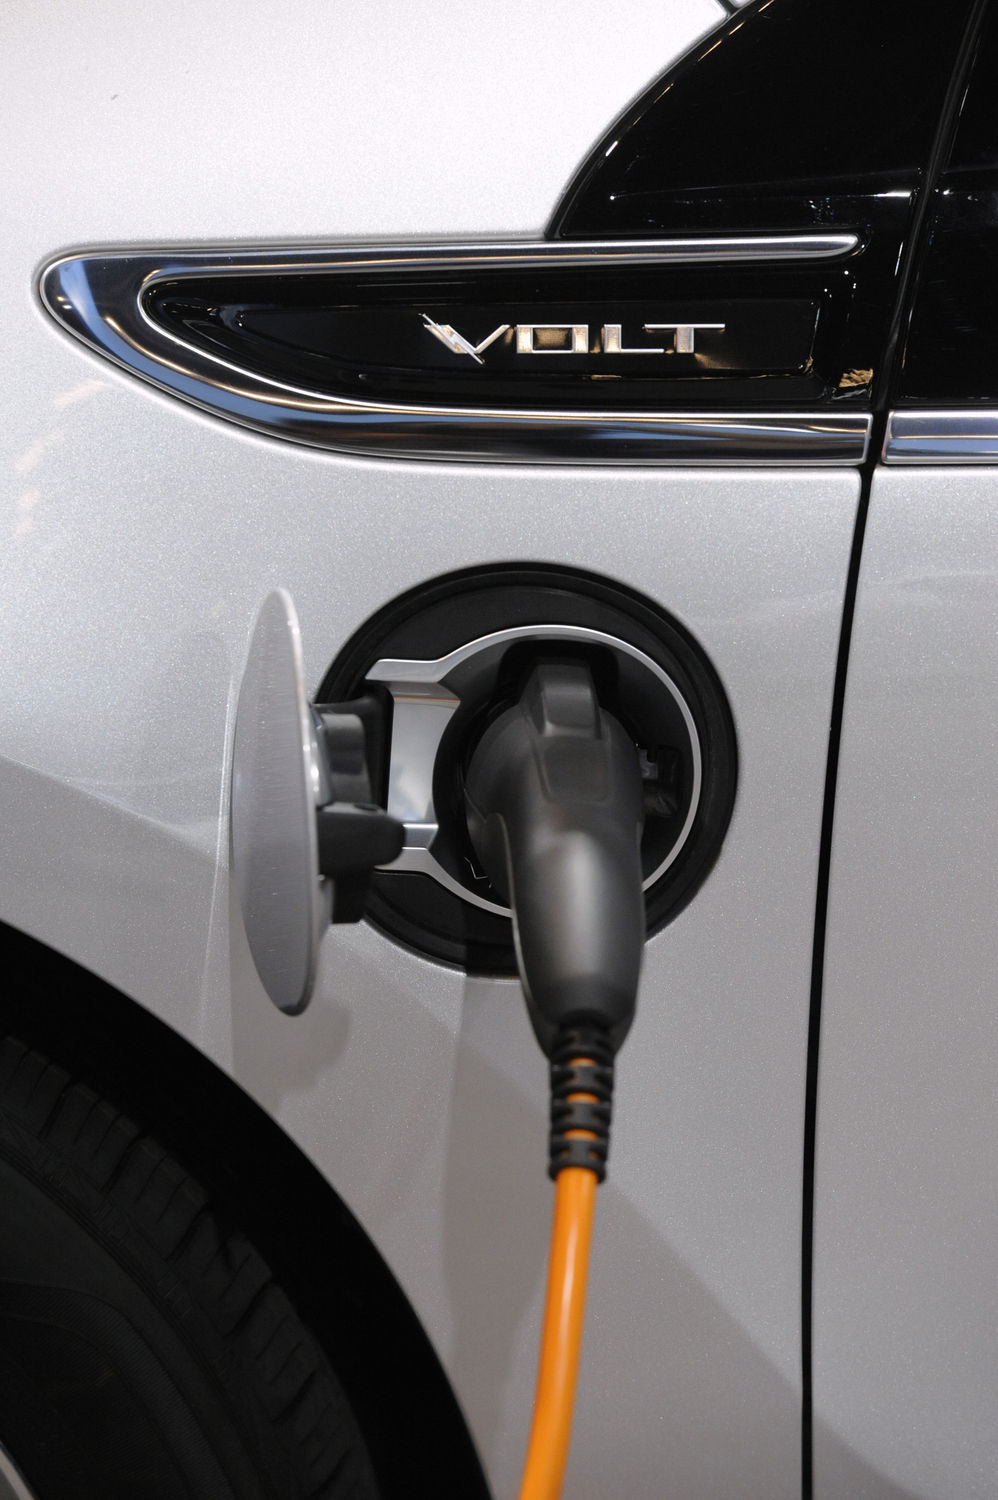 The Chevy Volt is on display at the Los Angeles Auto Show